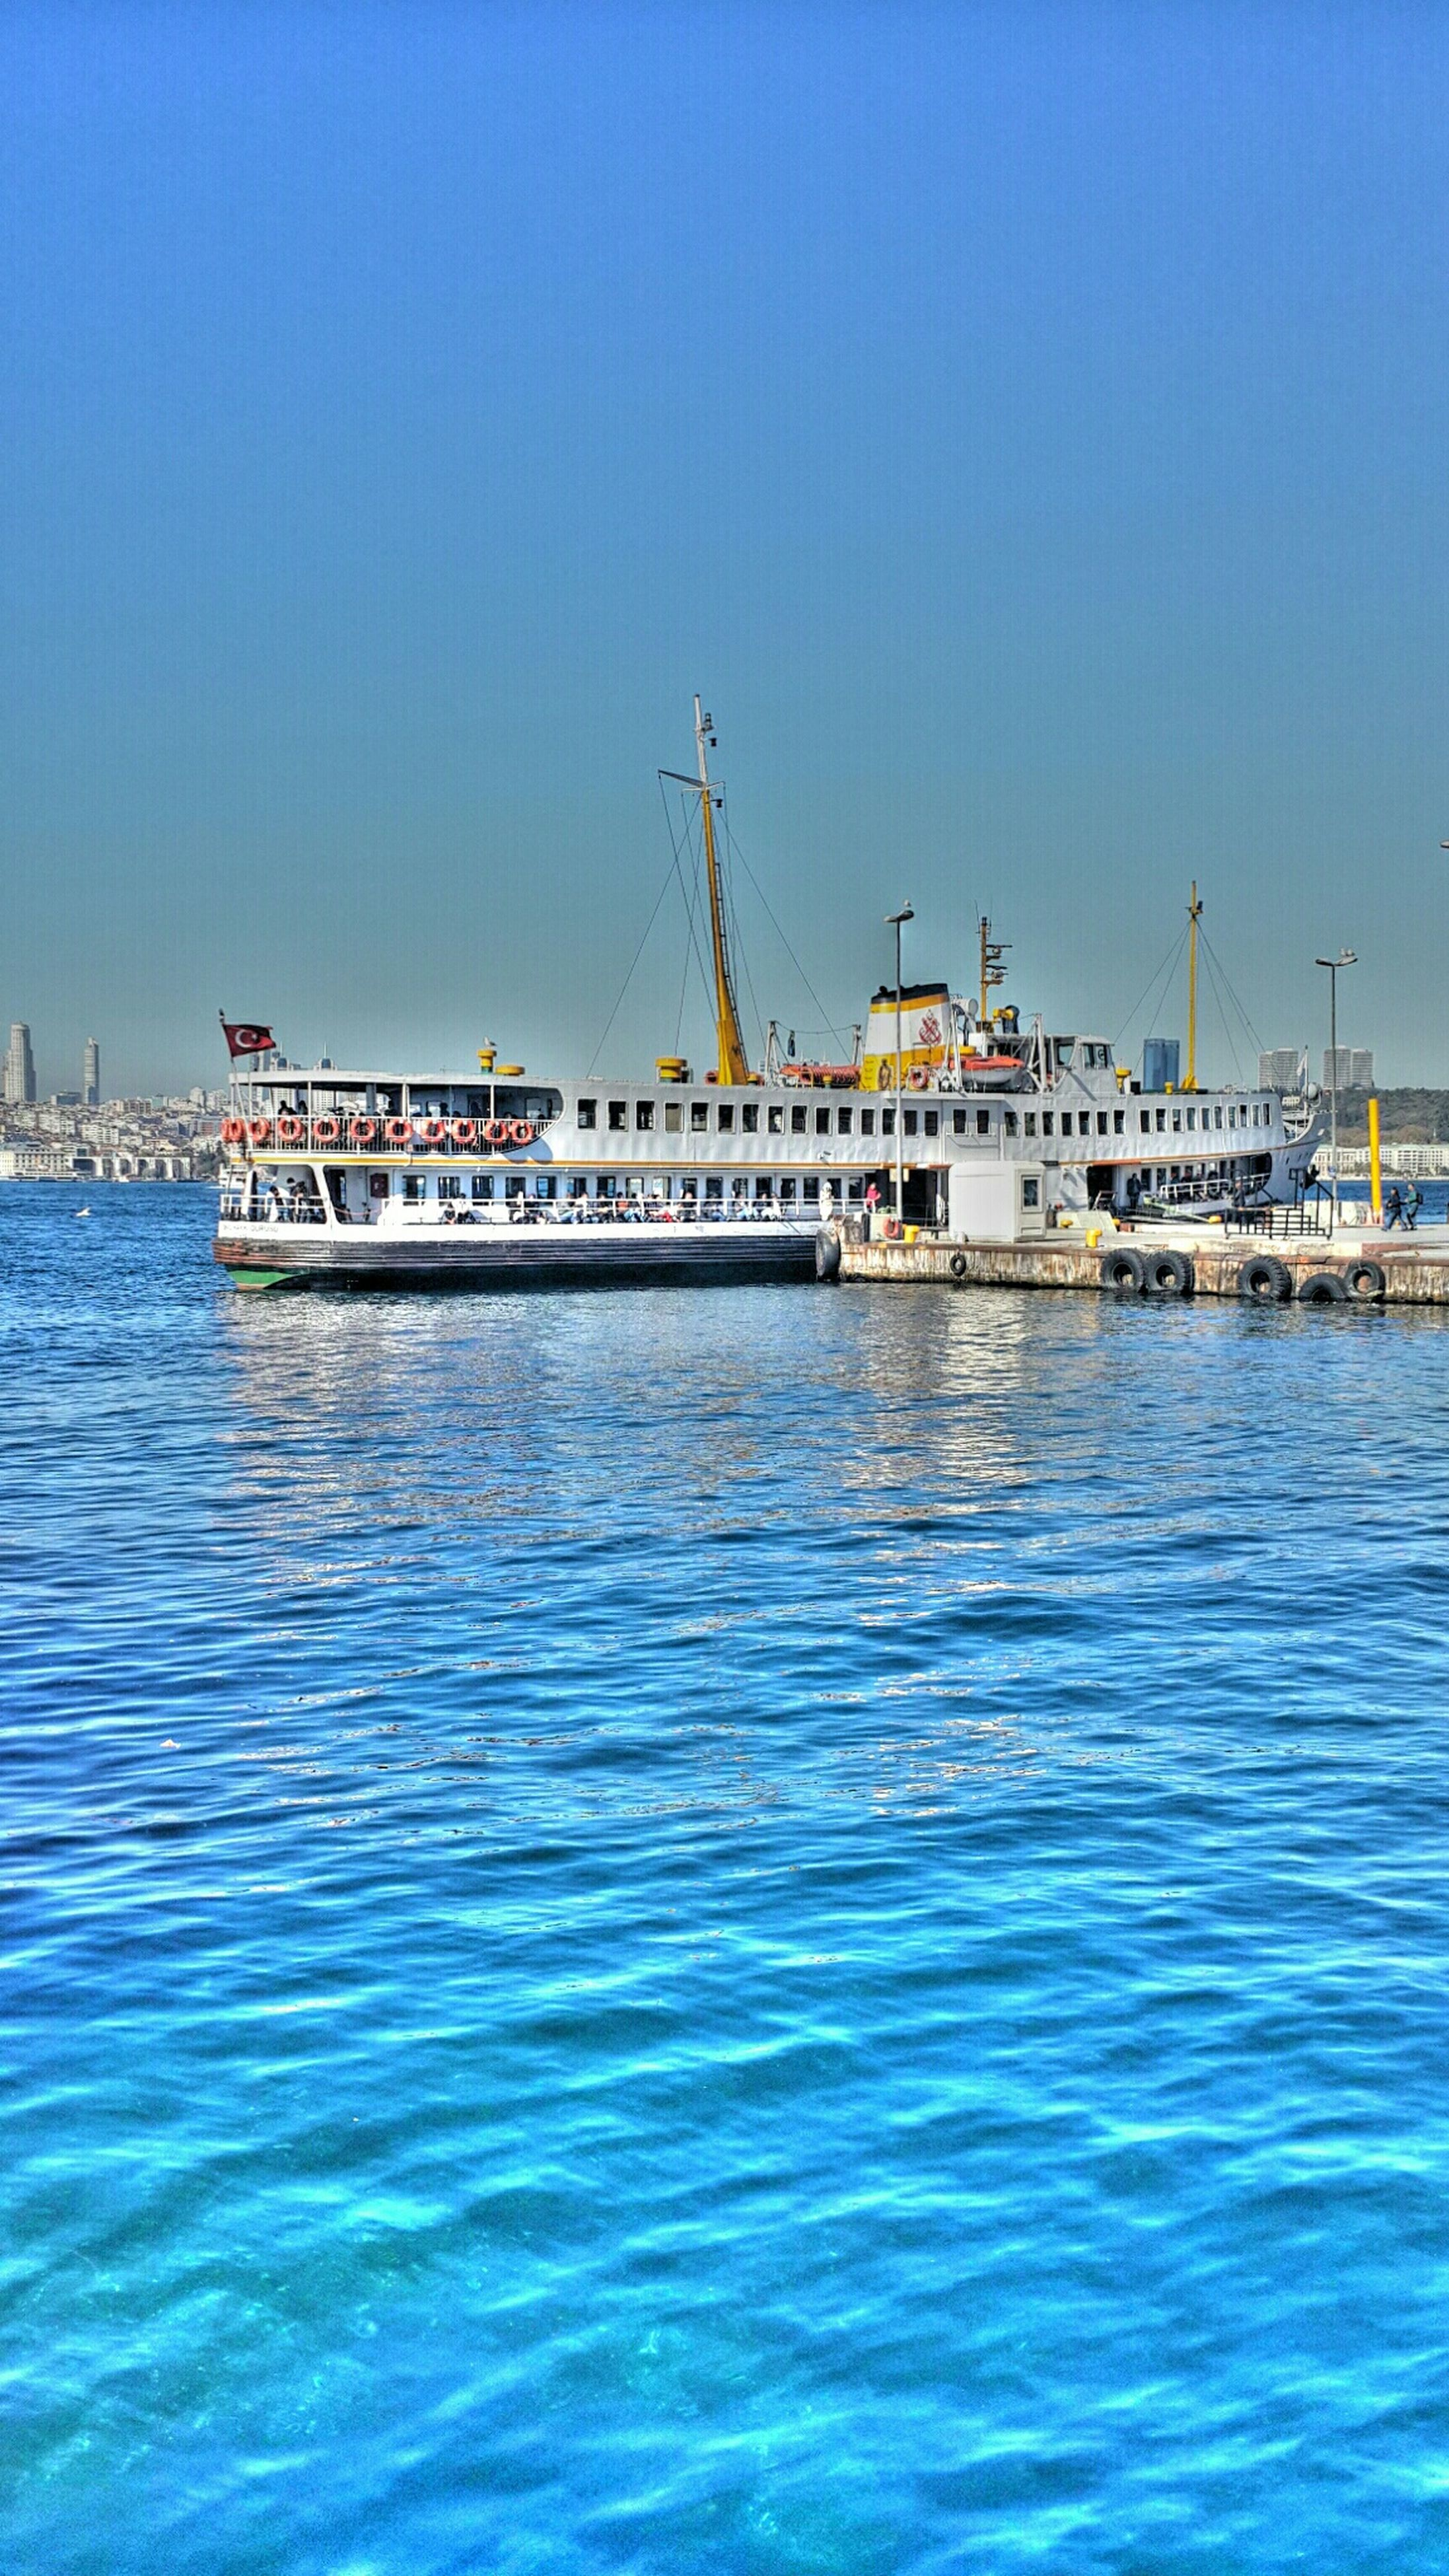 water, clear sky, waterfront, nautical vessel, blue, sea, copy space, transportation, boat, mode of transport, built structure, rippled, moored, nature, architecture, pier, tranquil scene, tranquility, harbor, building exterior